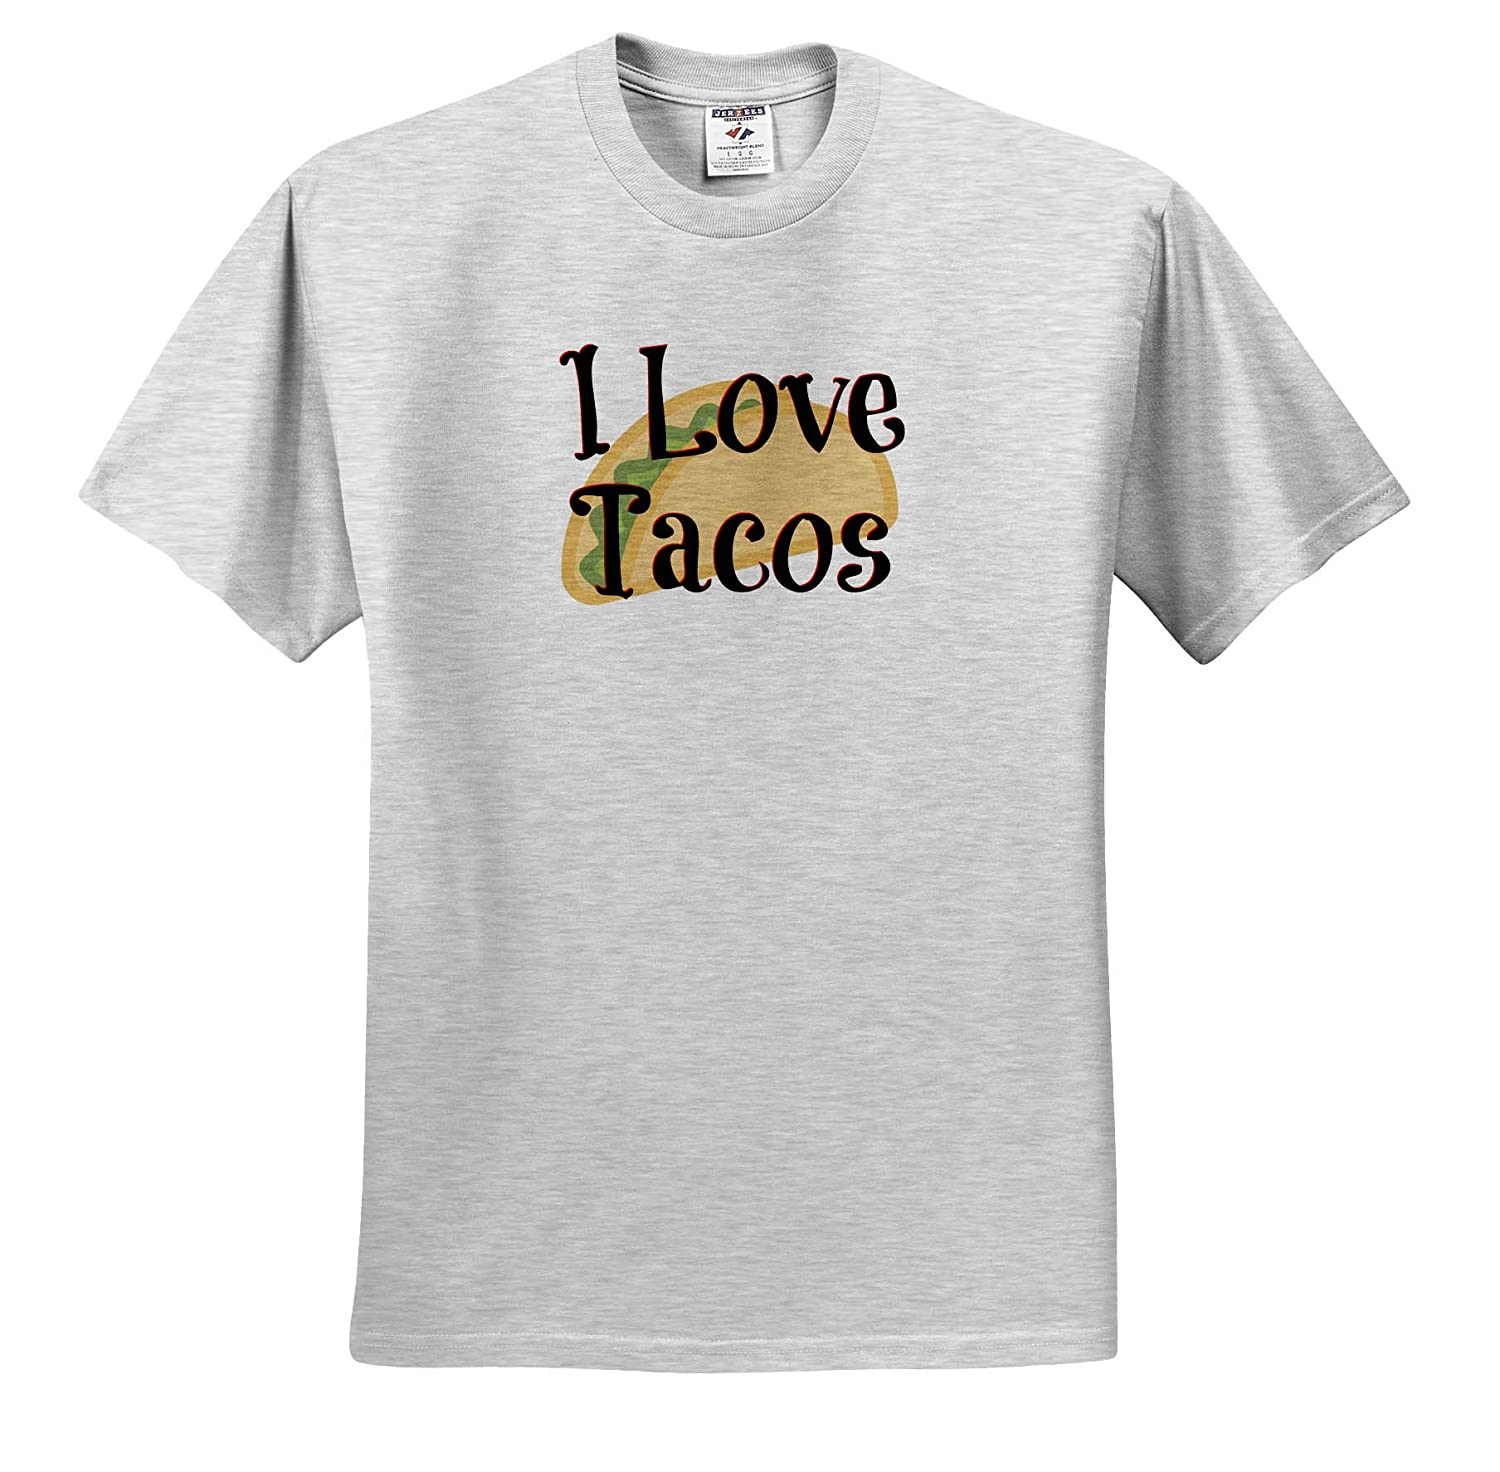 ts/_317419 Image of I Love Tacos Adult T-Shirt XL 3dRose Carrie Merchant Image Quote